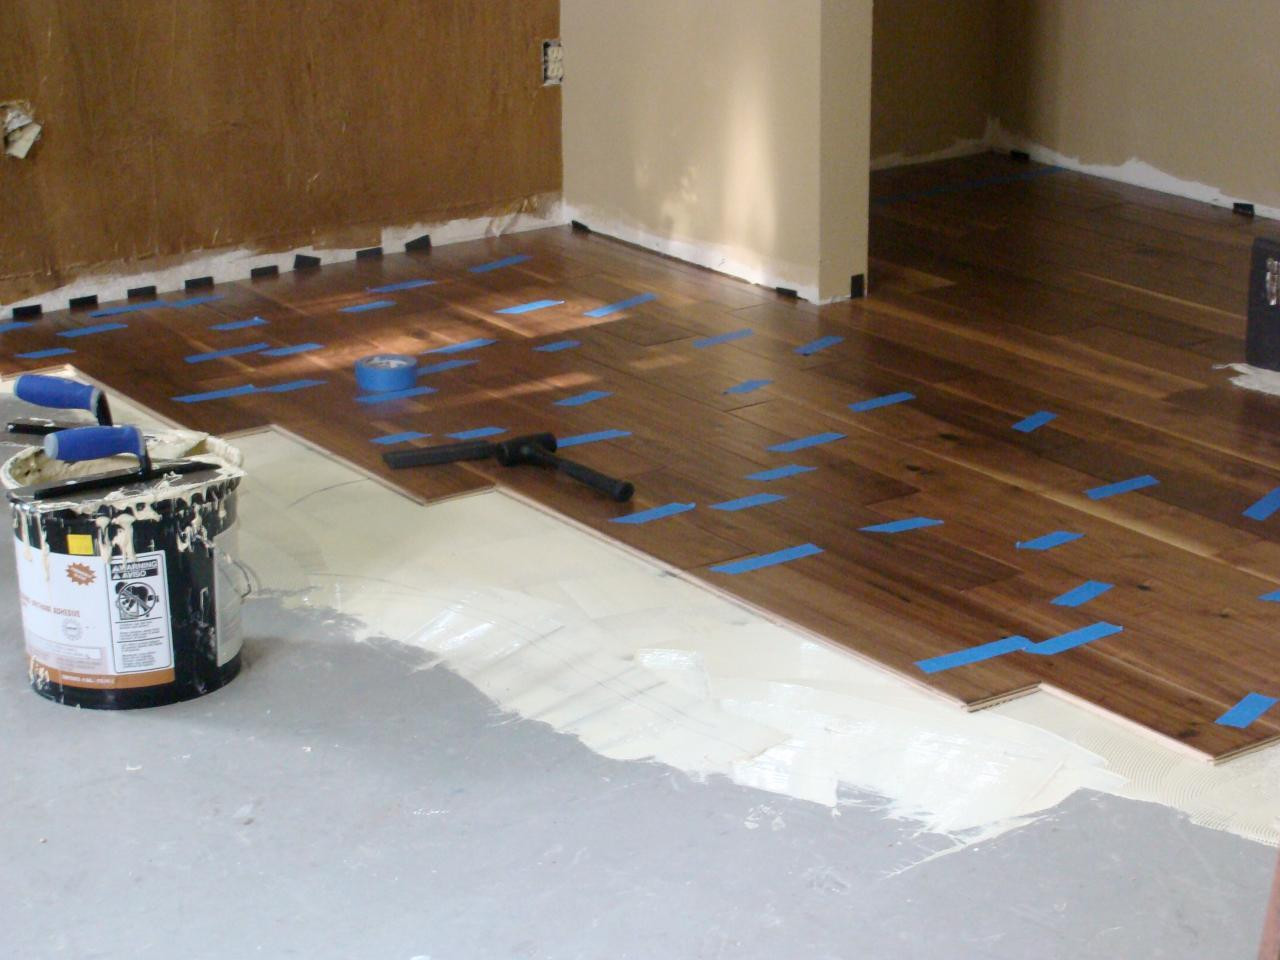 sanding and refinishing hardwood floors diy of luxury of diy wood floor refinishing collection with regard to diy wood floor refinishing beautiful installing hardwood flooring over concrete how tos